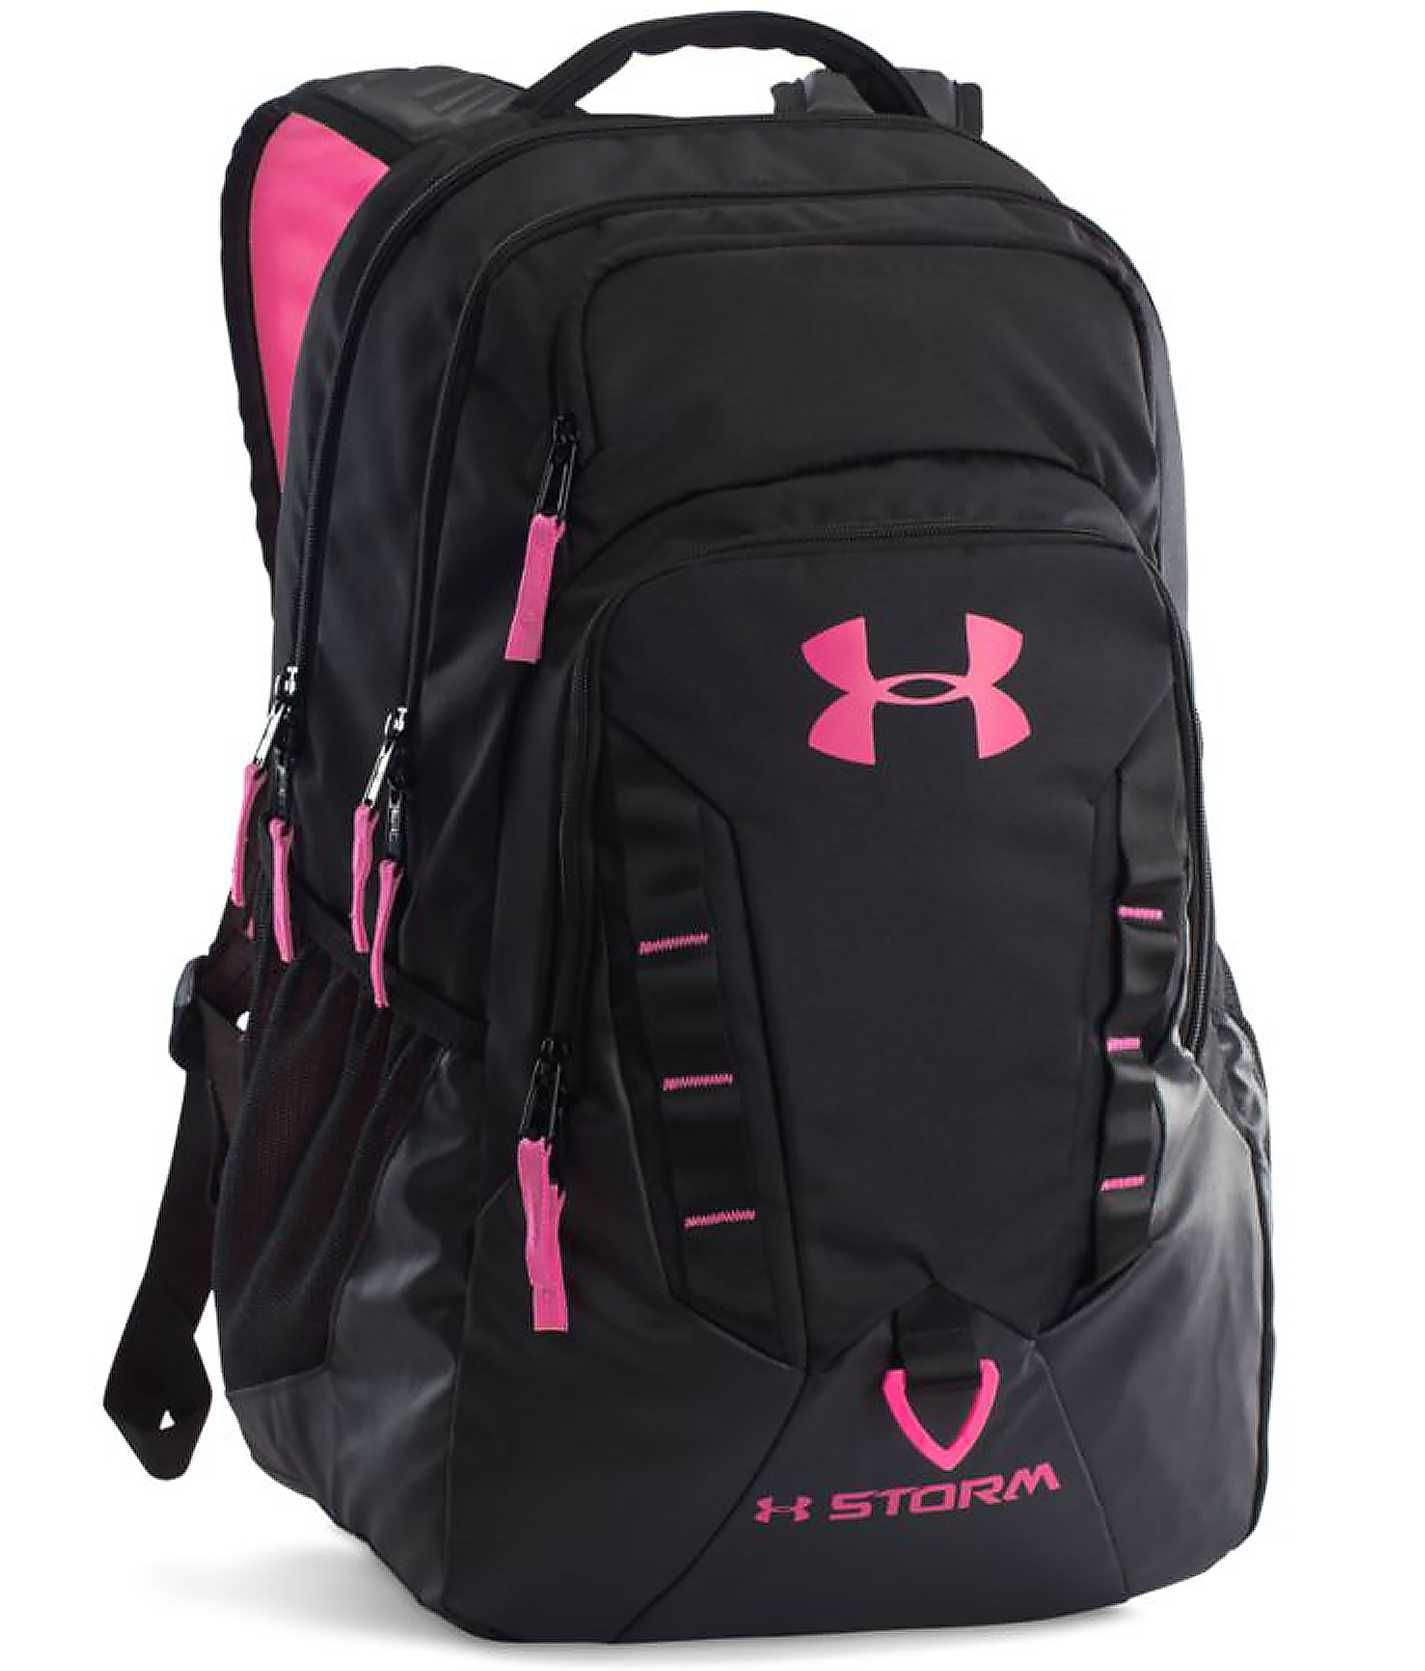 under armour maroon backpack cheap   OFF61% The Largest Catalog Discounts b65ae7e3a24f7